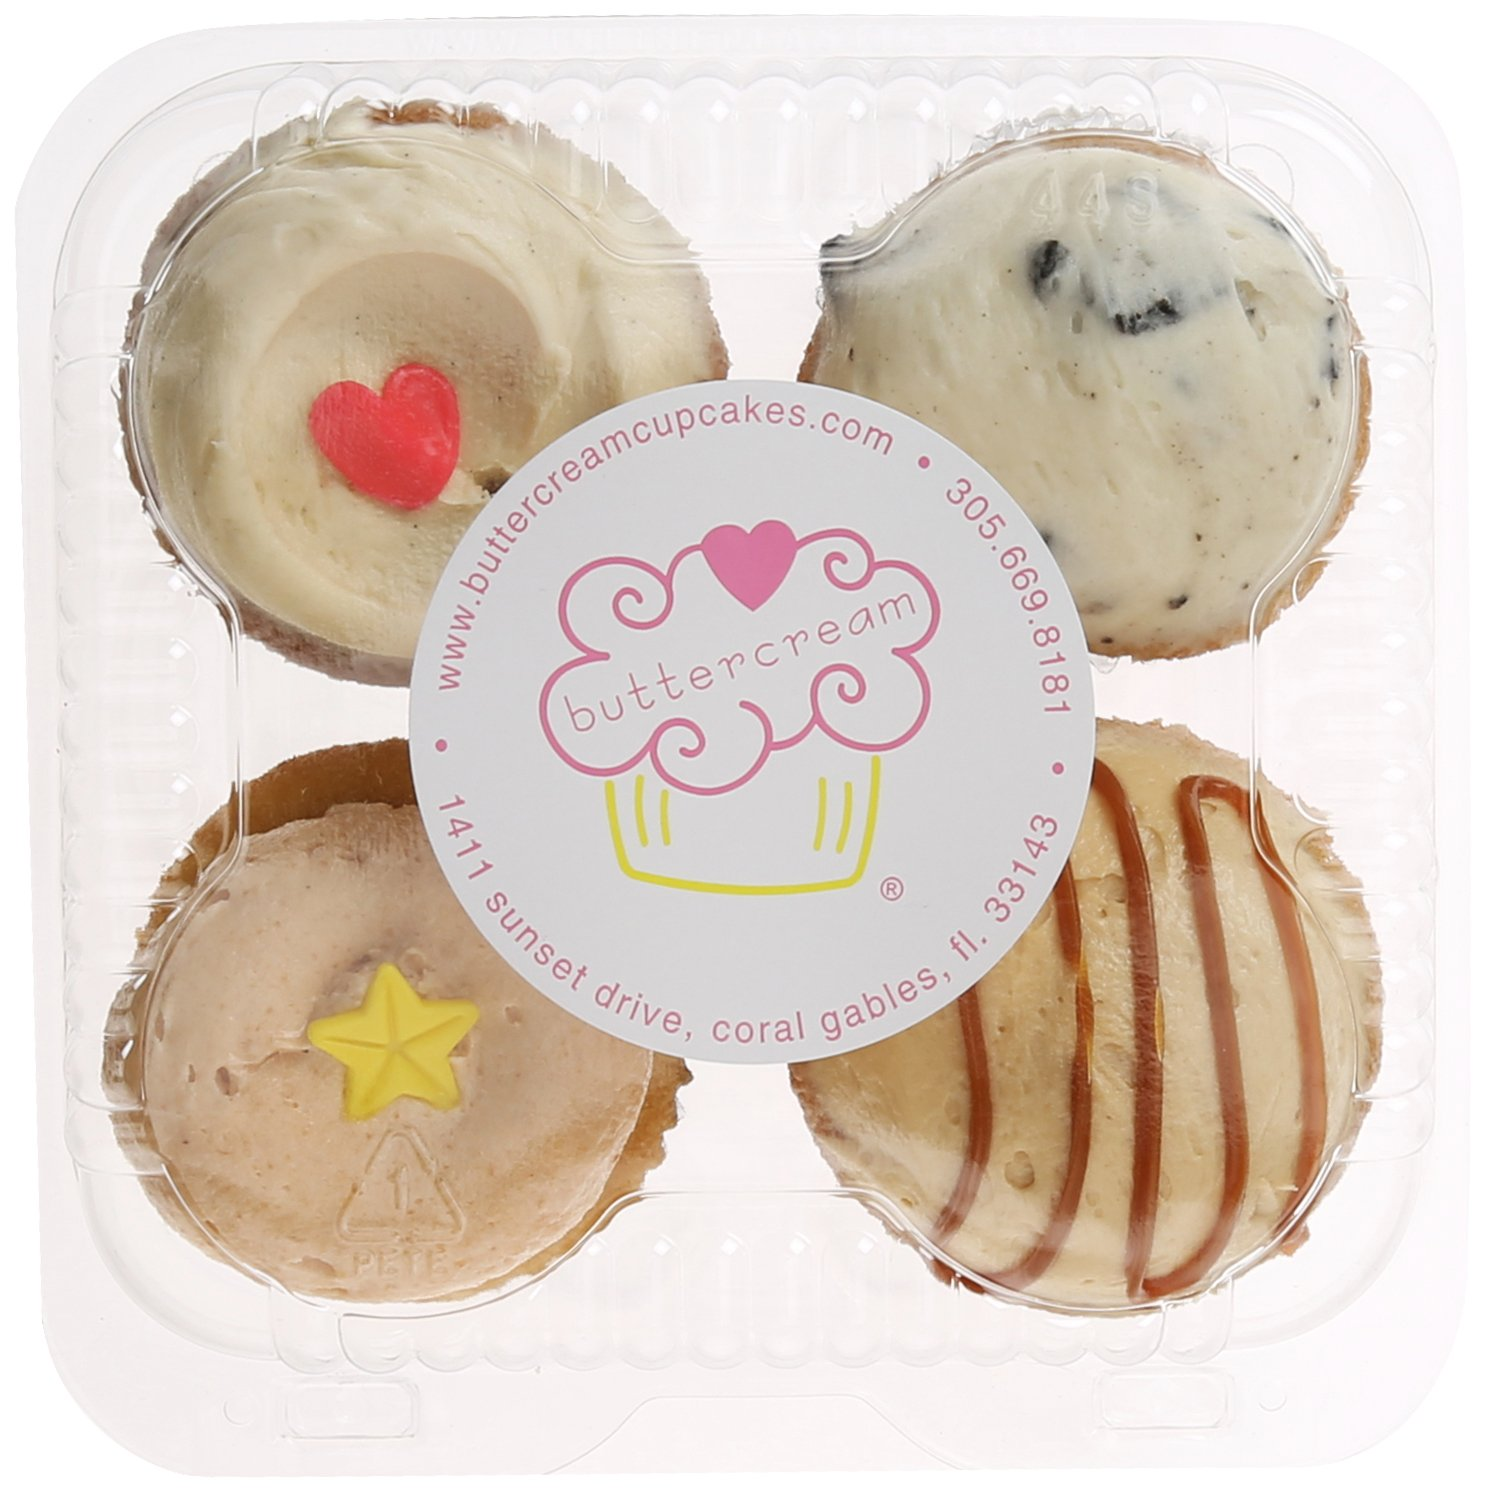 Buttercream Cupcakes, Classic Favorites Miami Style, Standard/4 cupcakes: Amazon.com: Grocery & Gourmet Food